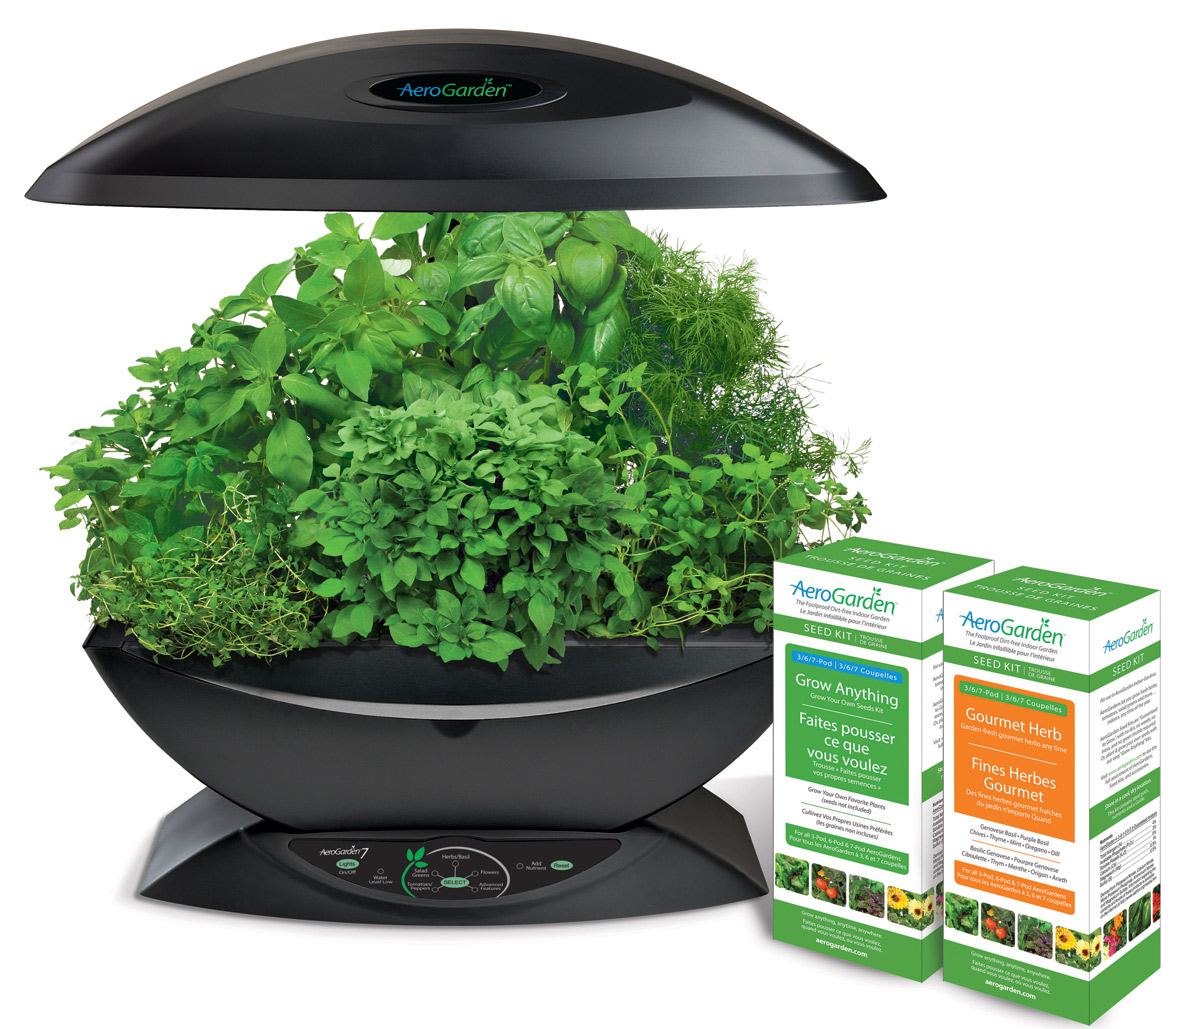 Countertop Herb Garden Kit : -output countertop garden that produces an abundance of fresh herbs ...